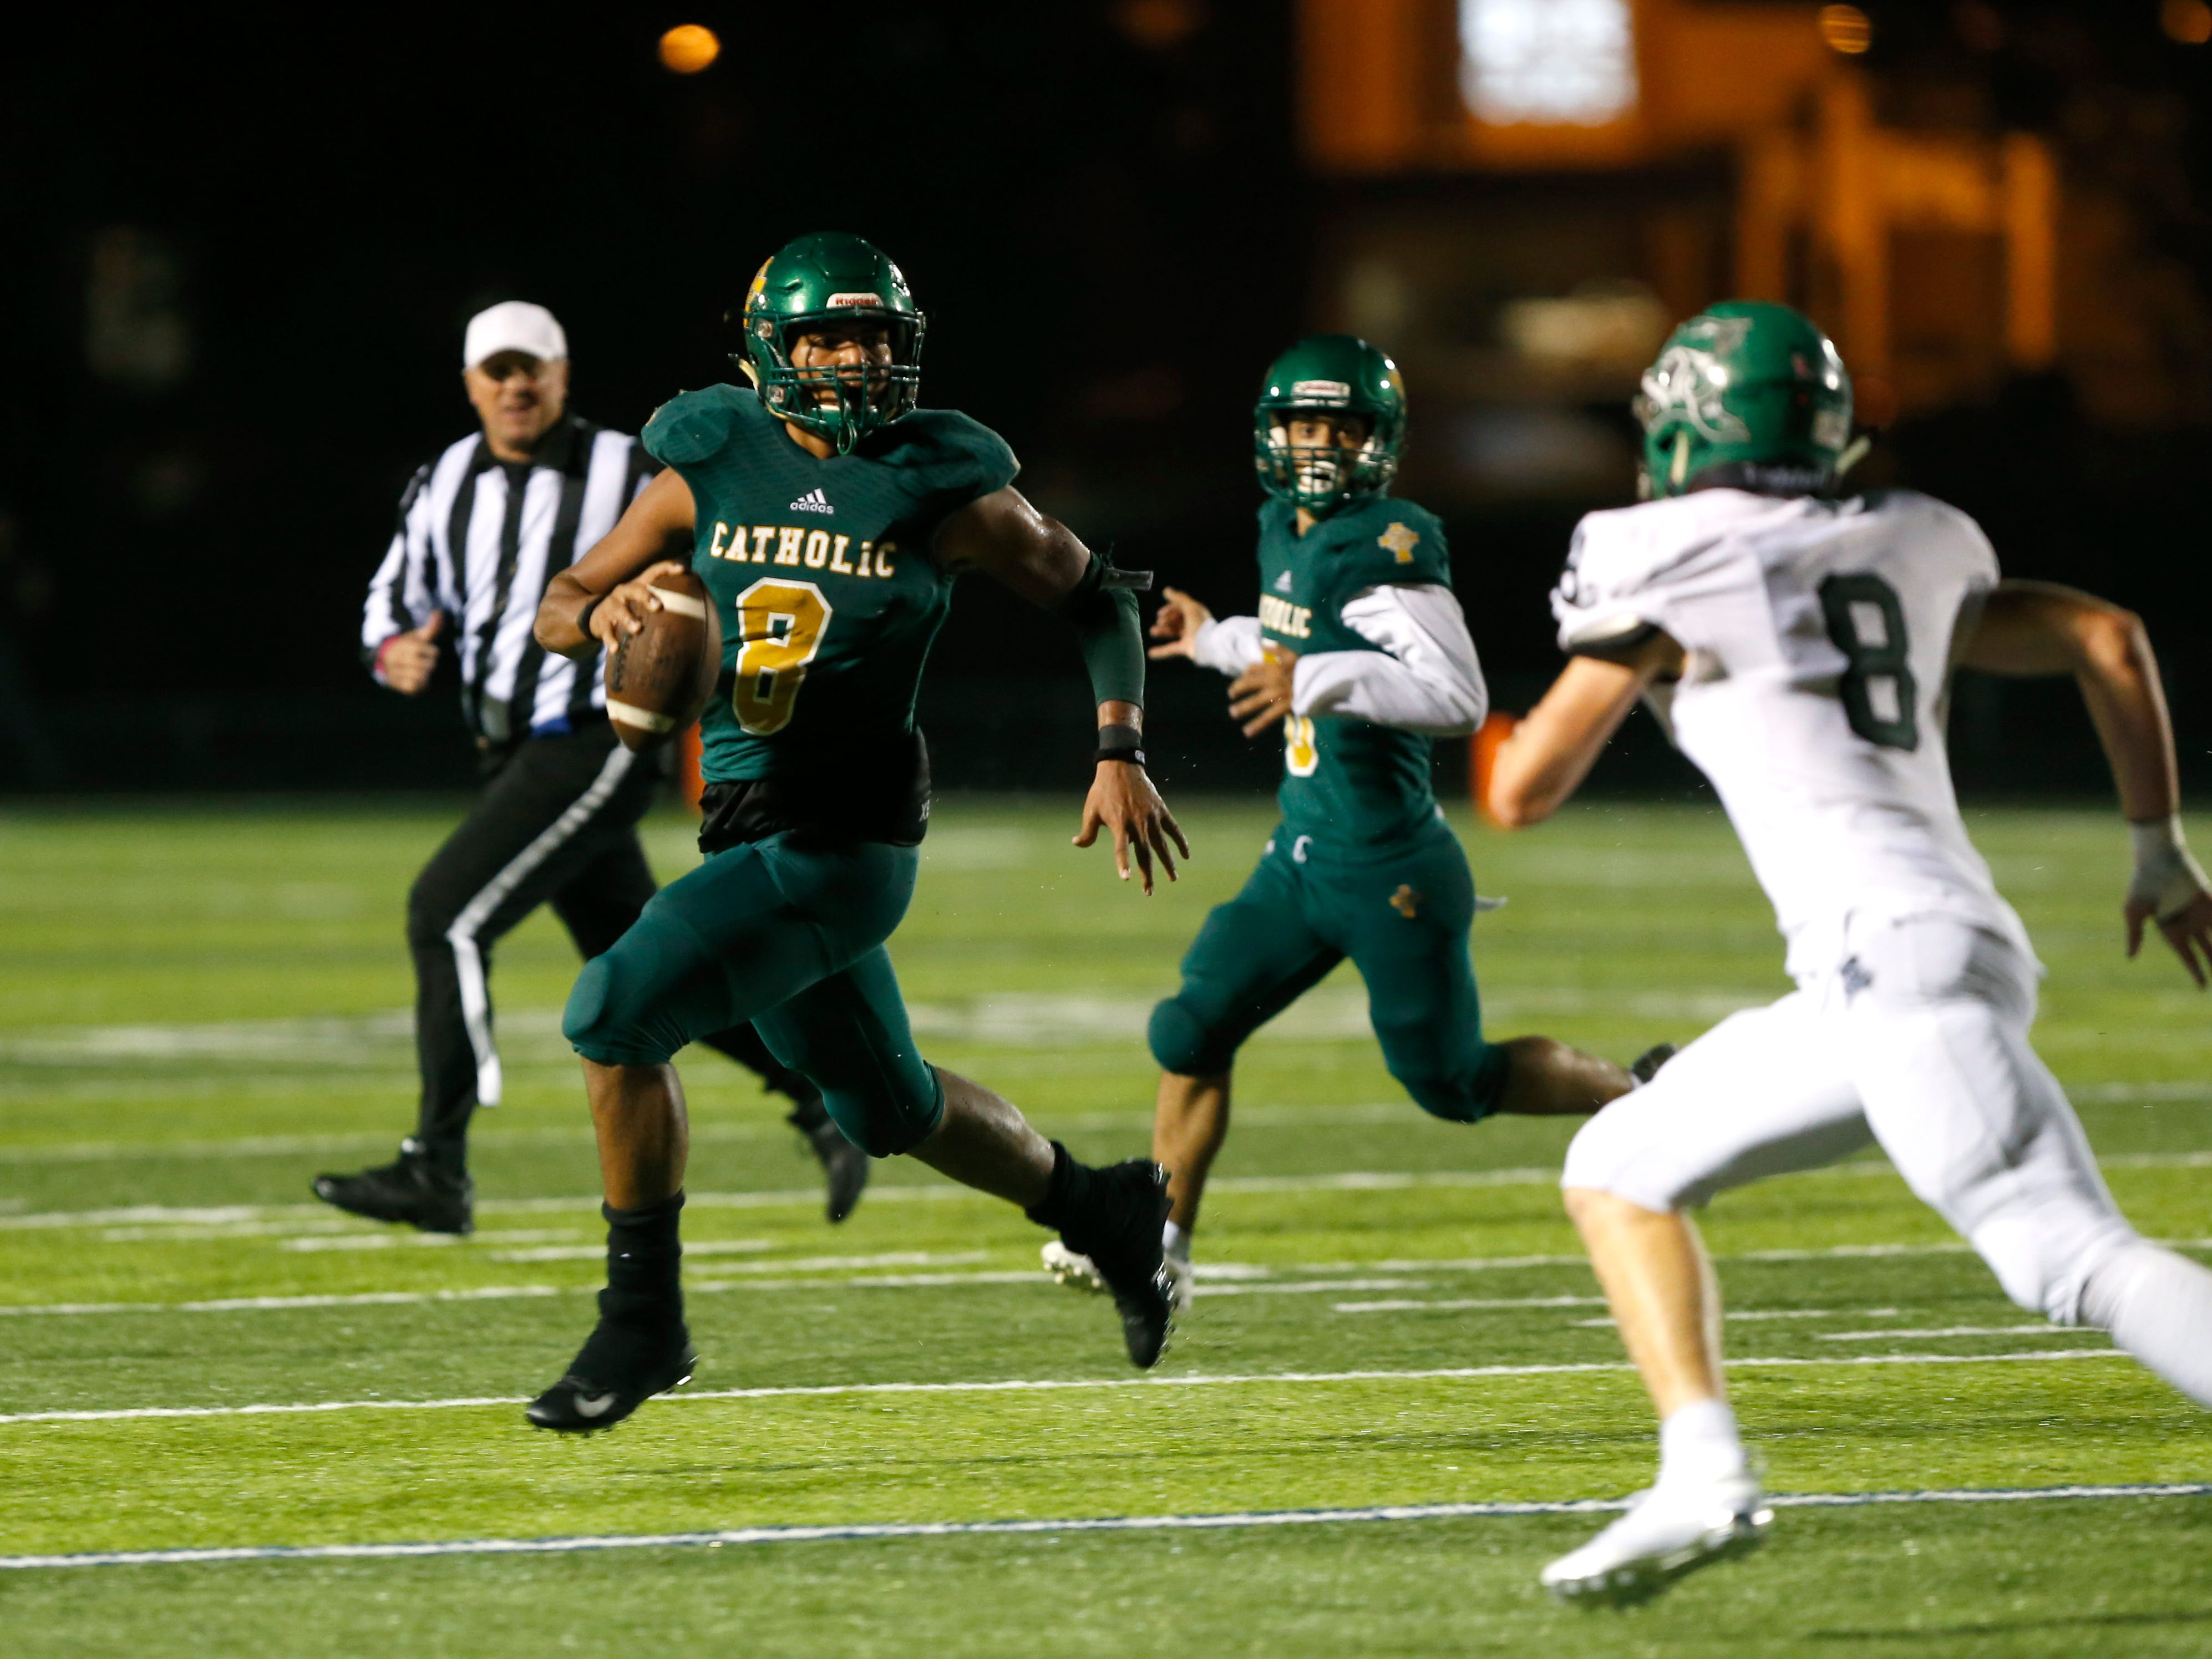 Springfield Catholics Tyson Riley runs with the ball as the Fightin' Irish take on the Mt. Vernon Mountaineers at Catholic on Friday, Oct. 12, 2018.